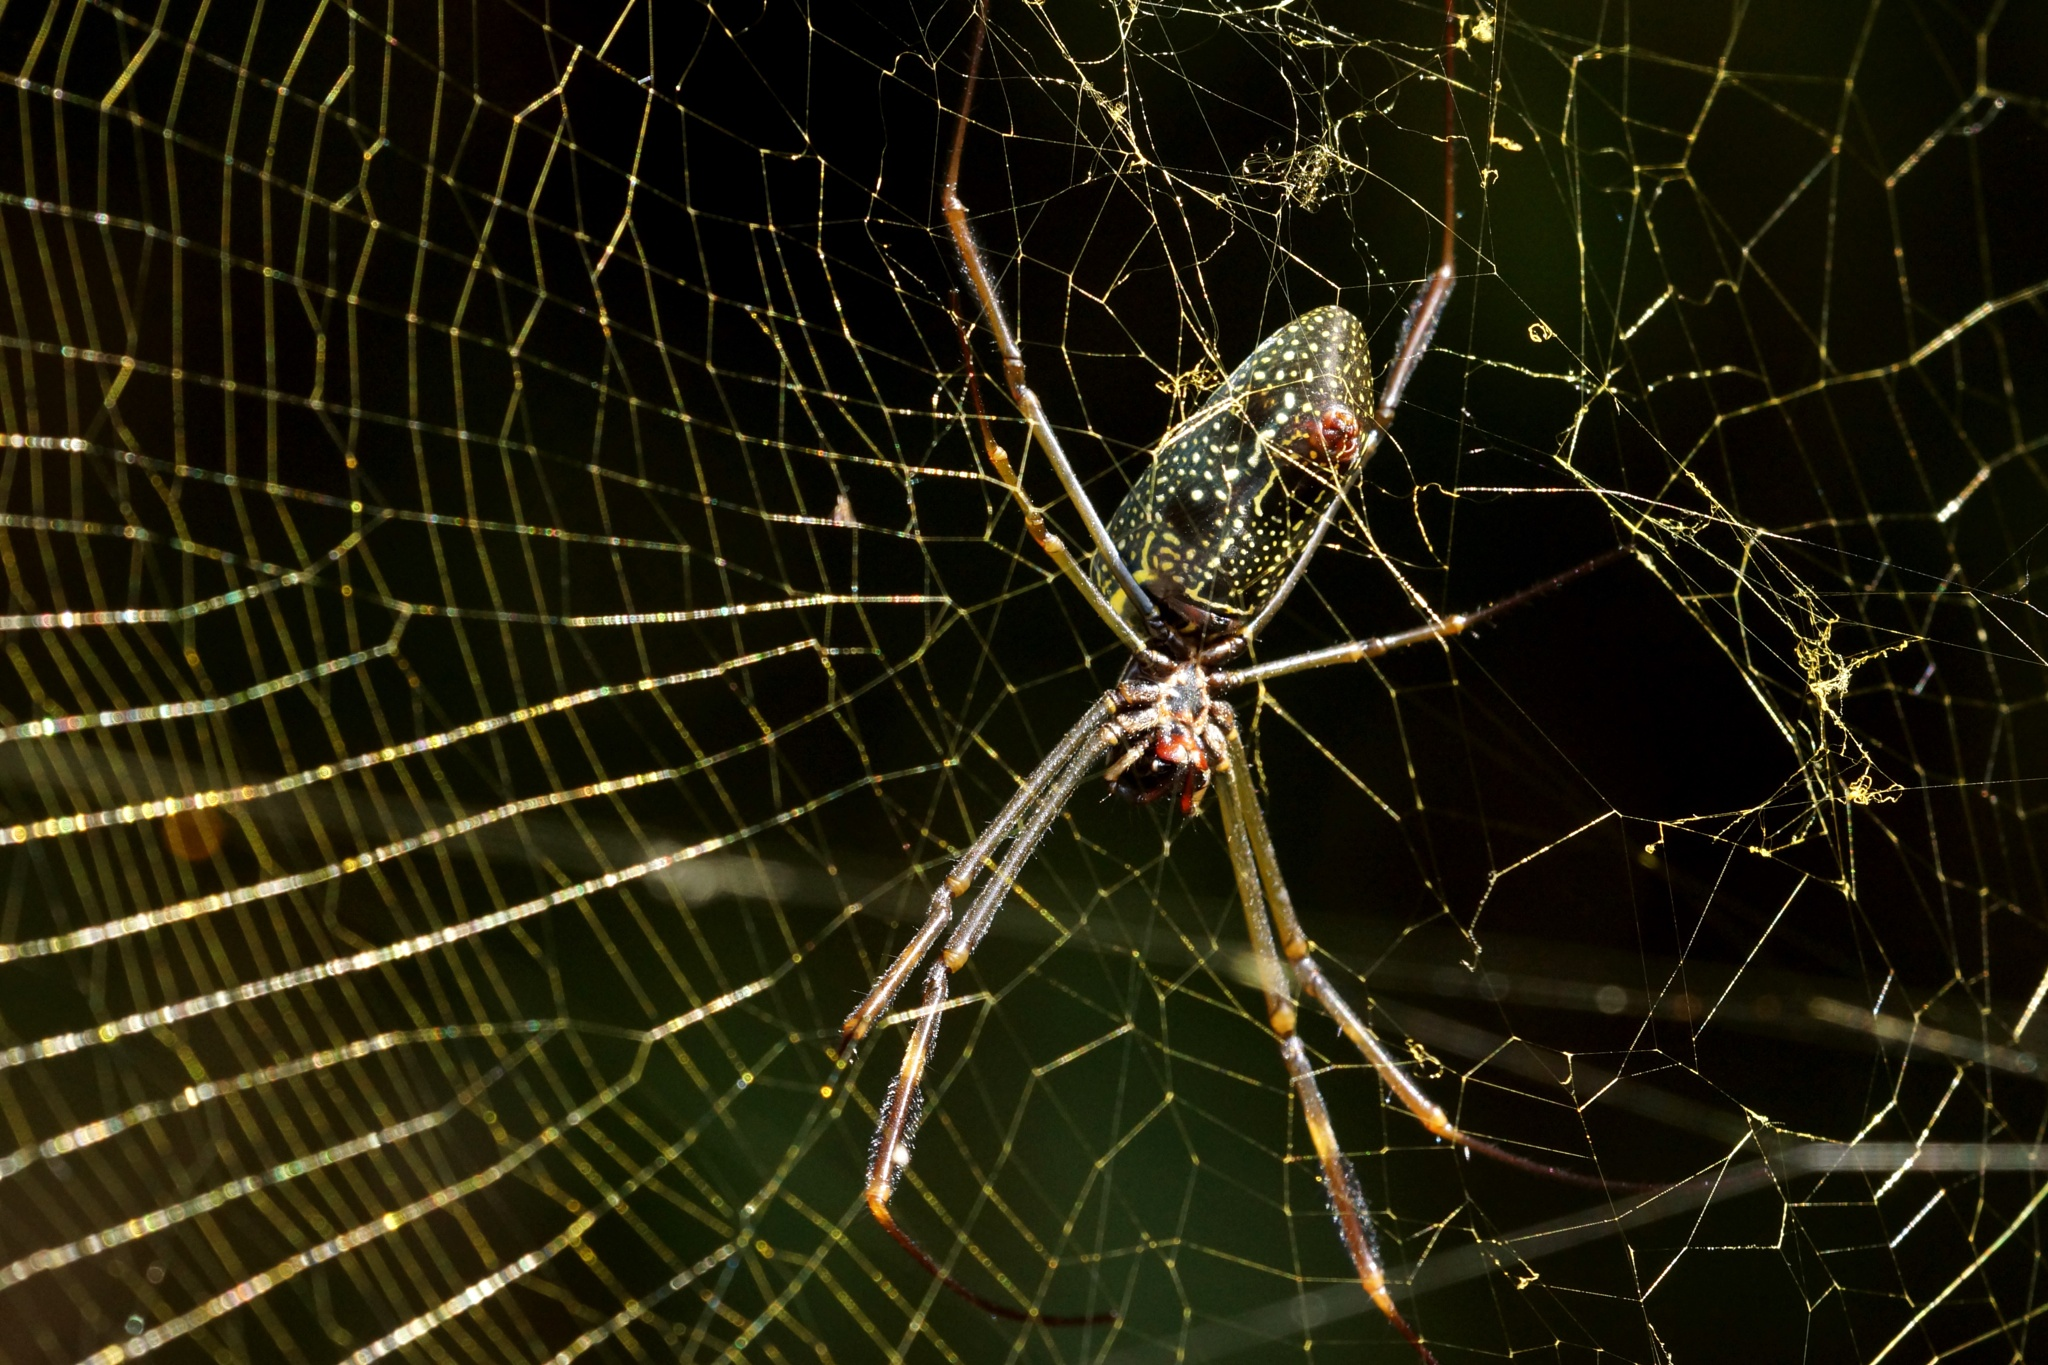 big spider on web by allenhagler59663852